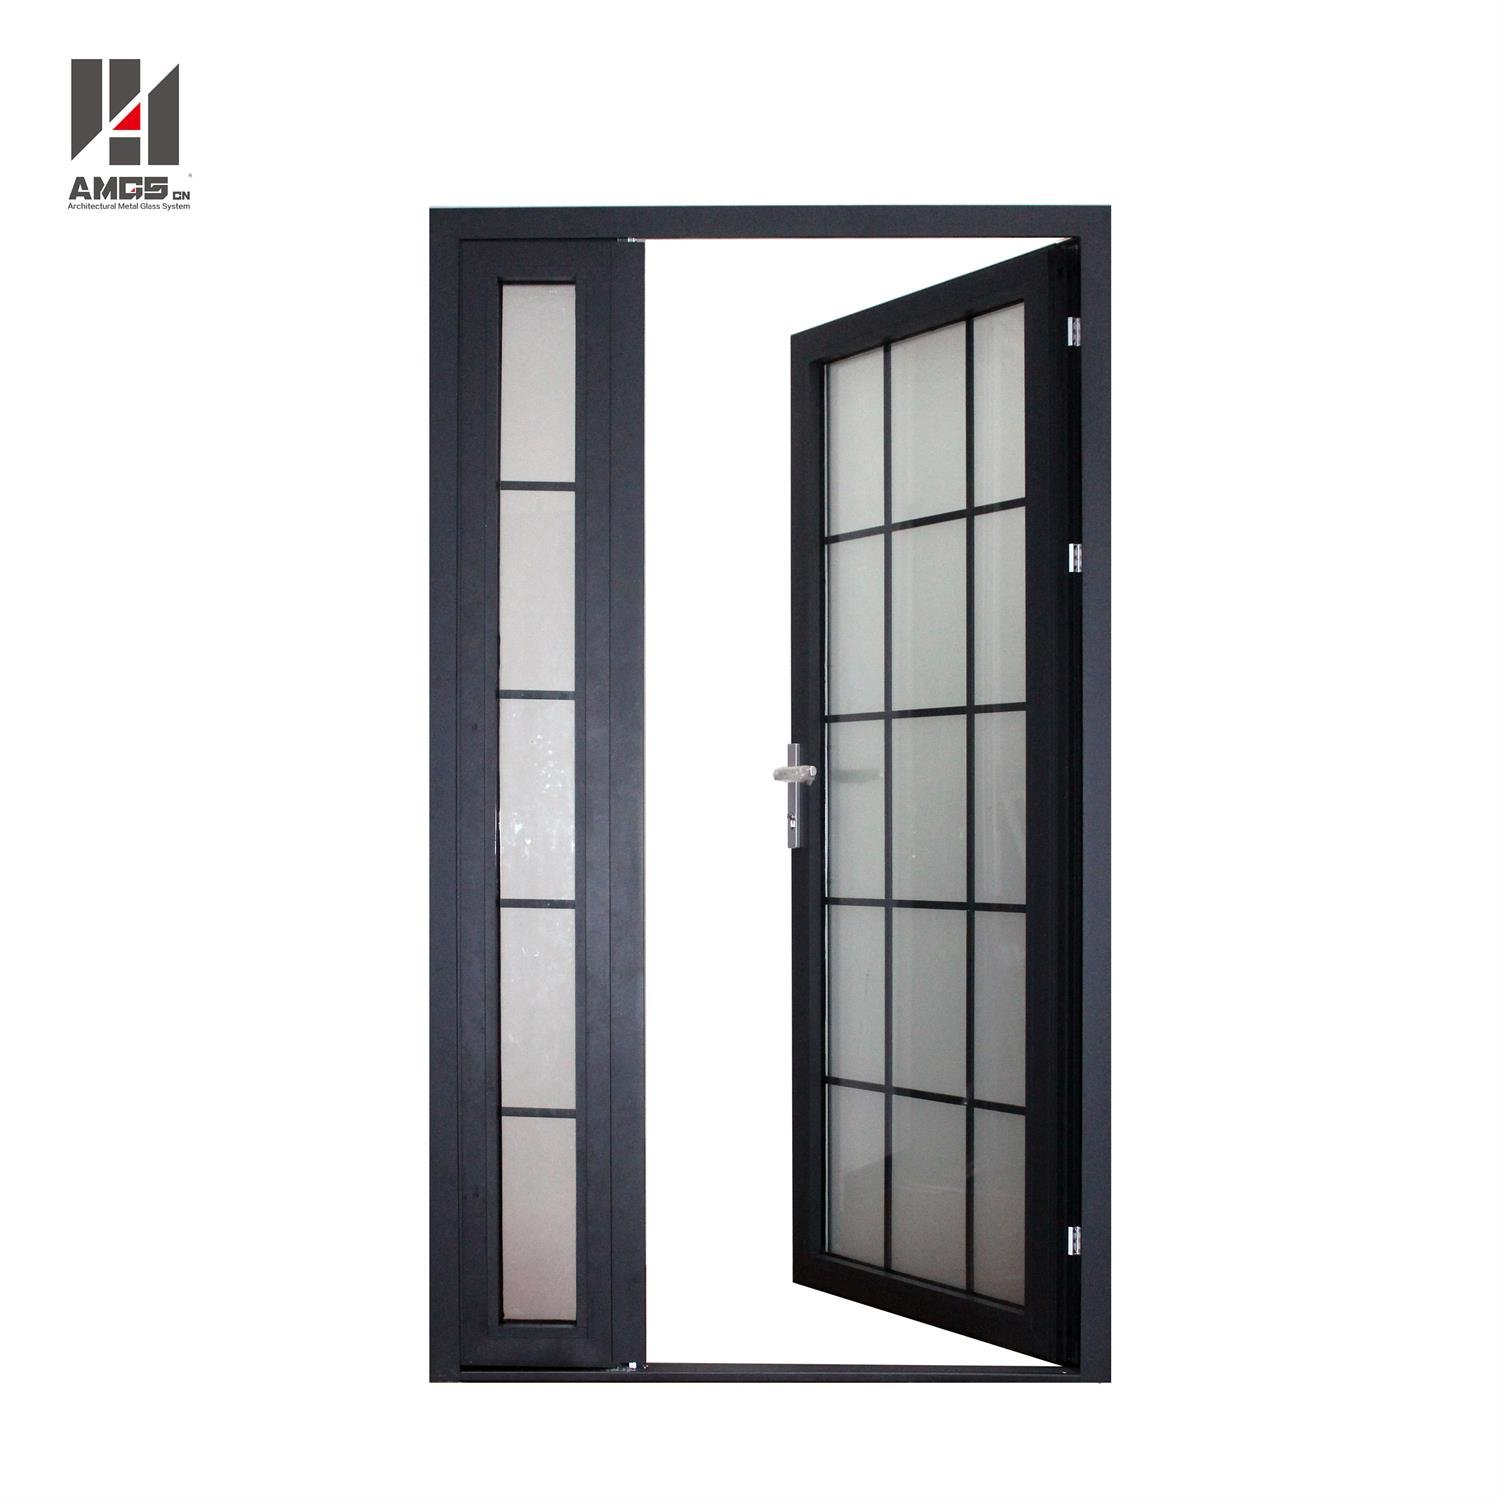 AMGS Aluminum Swing Doors With Frosted Glass For Exterior Front Door Aluminum Swing Doors image9